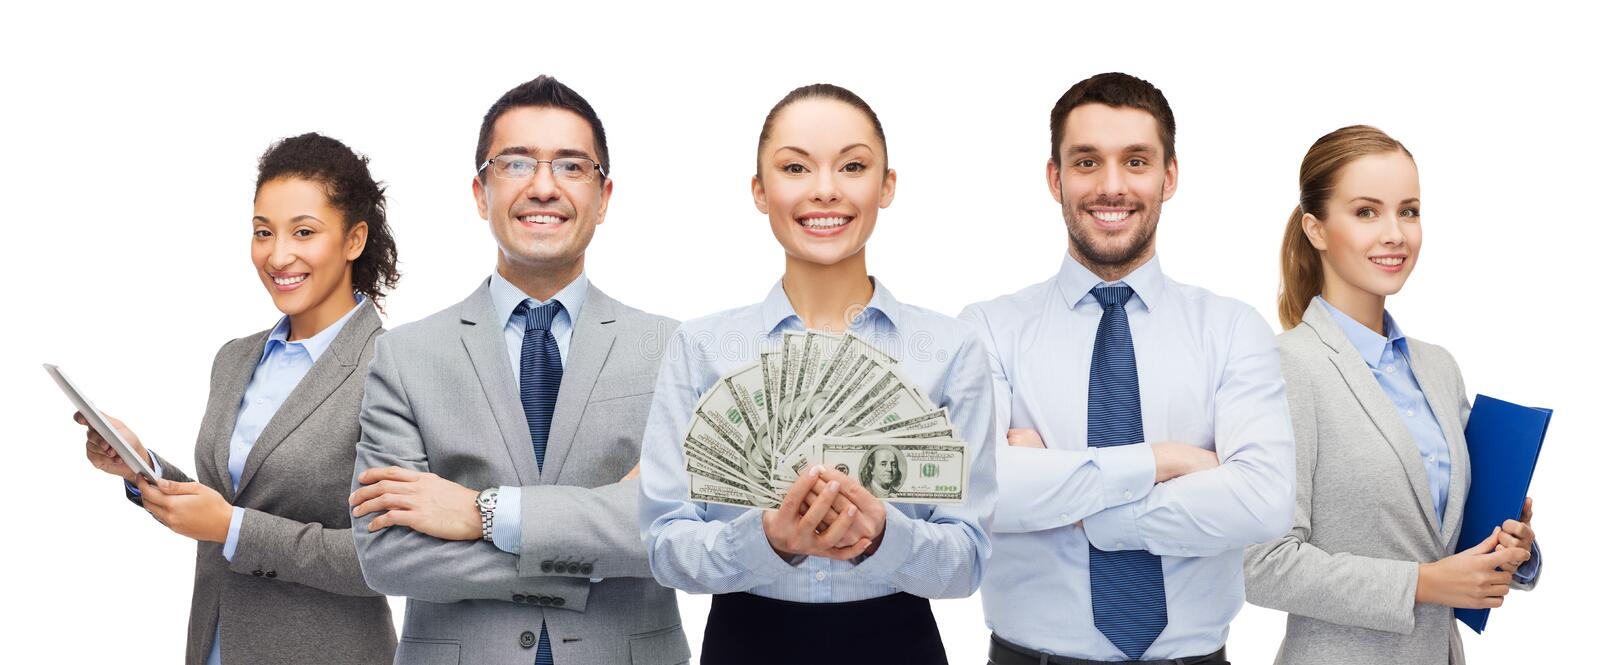 Group of business people with dollar cash money stock photo